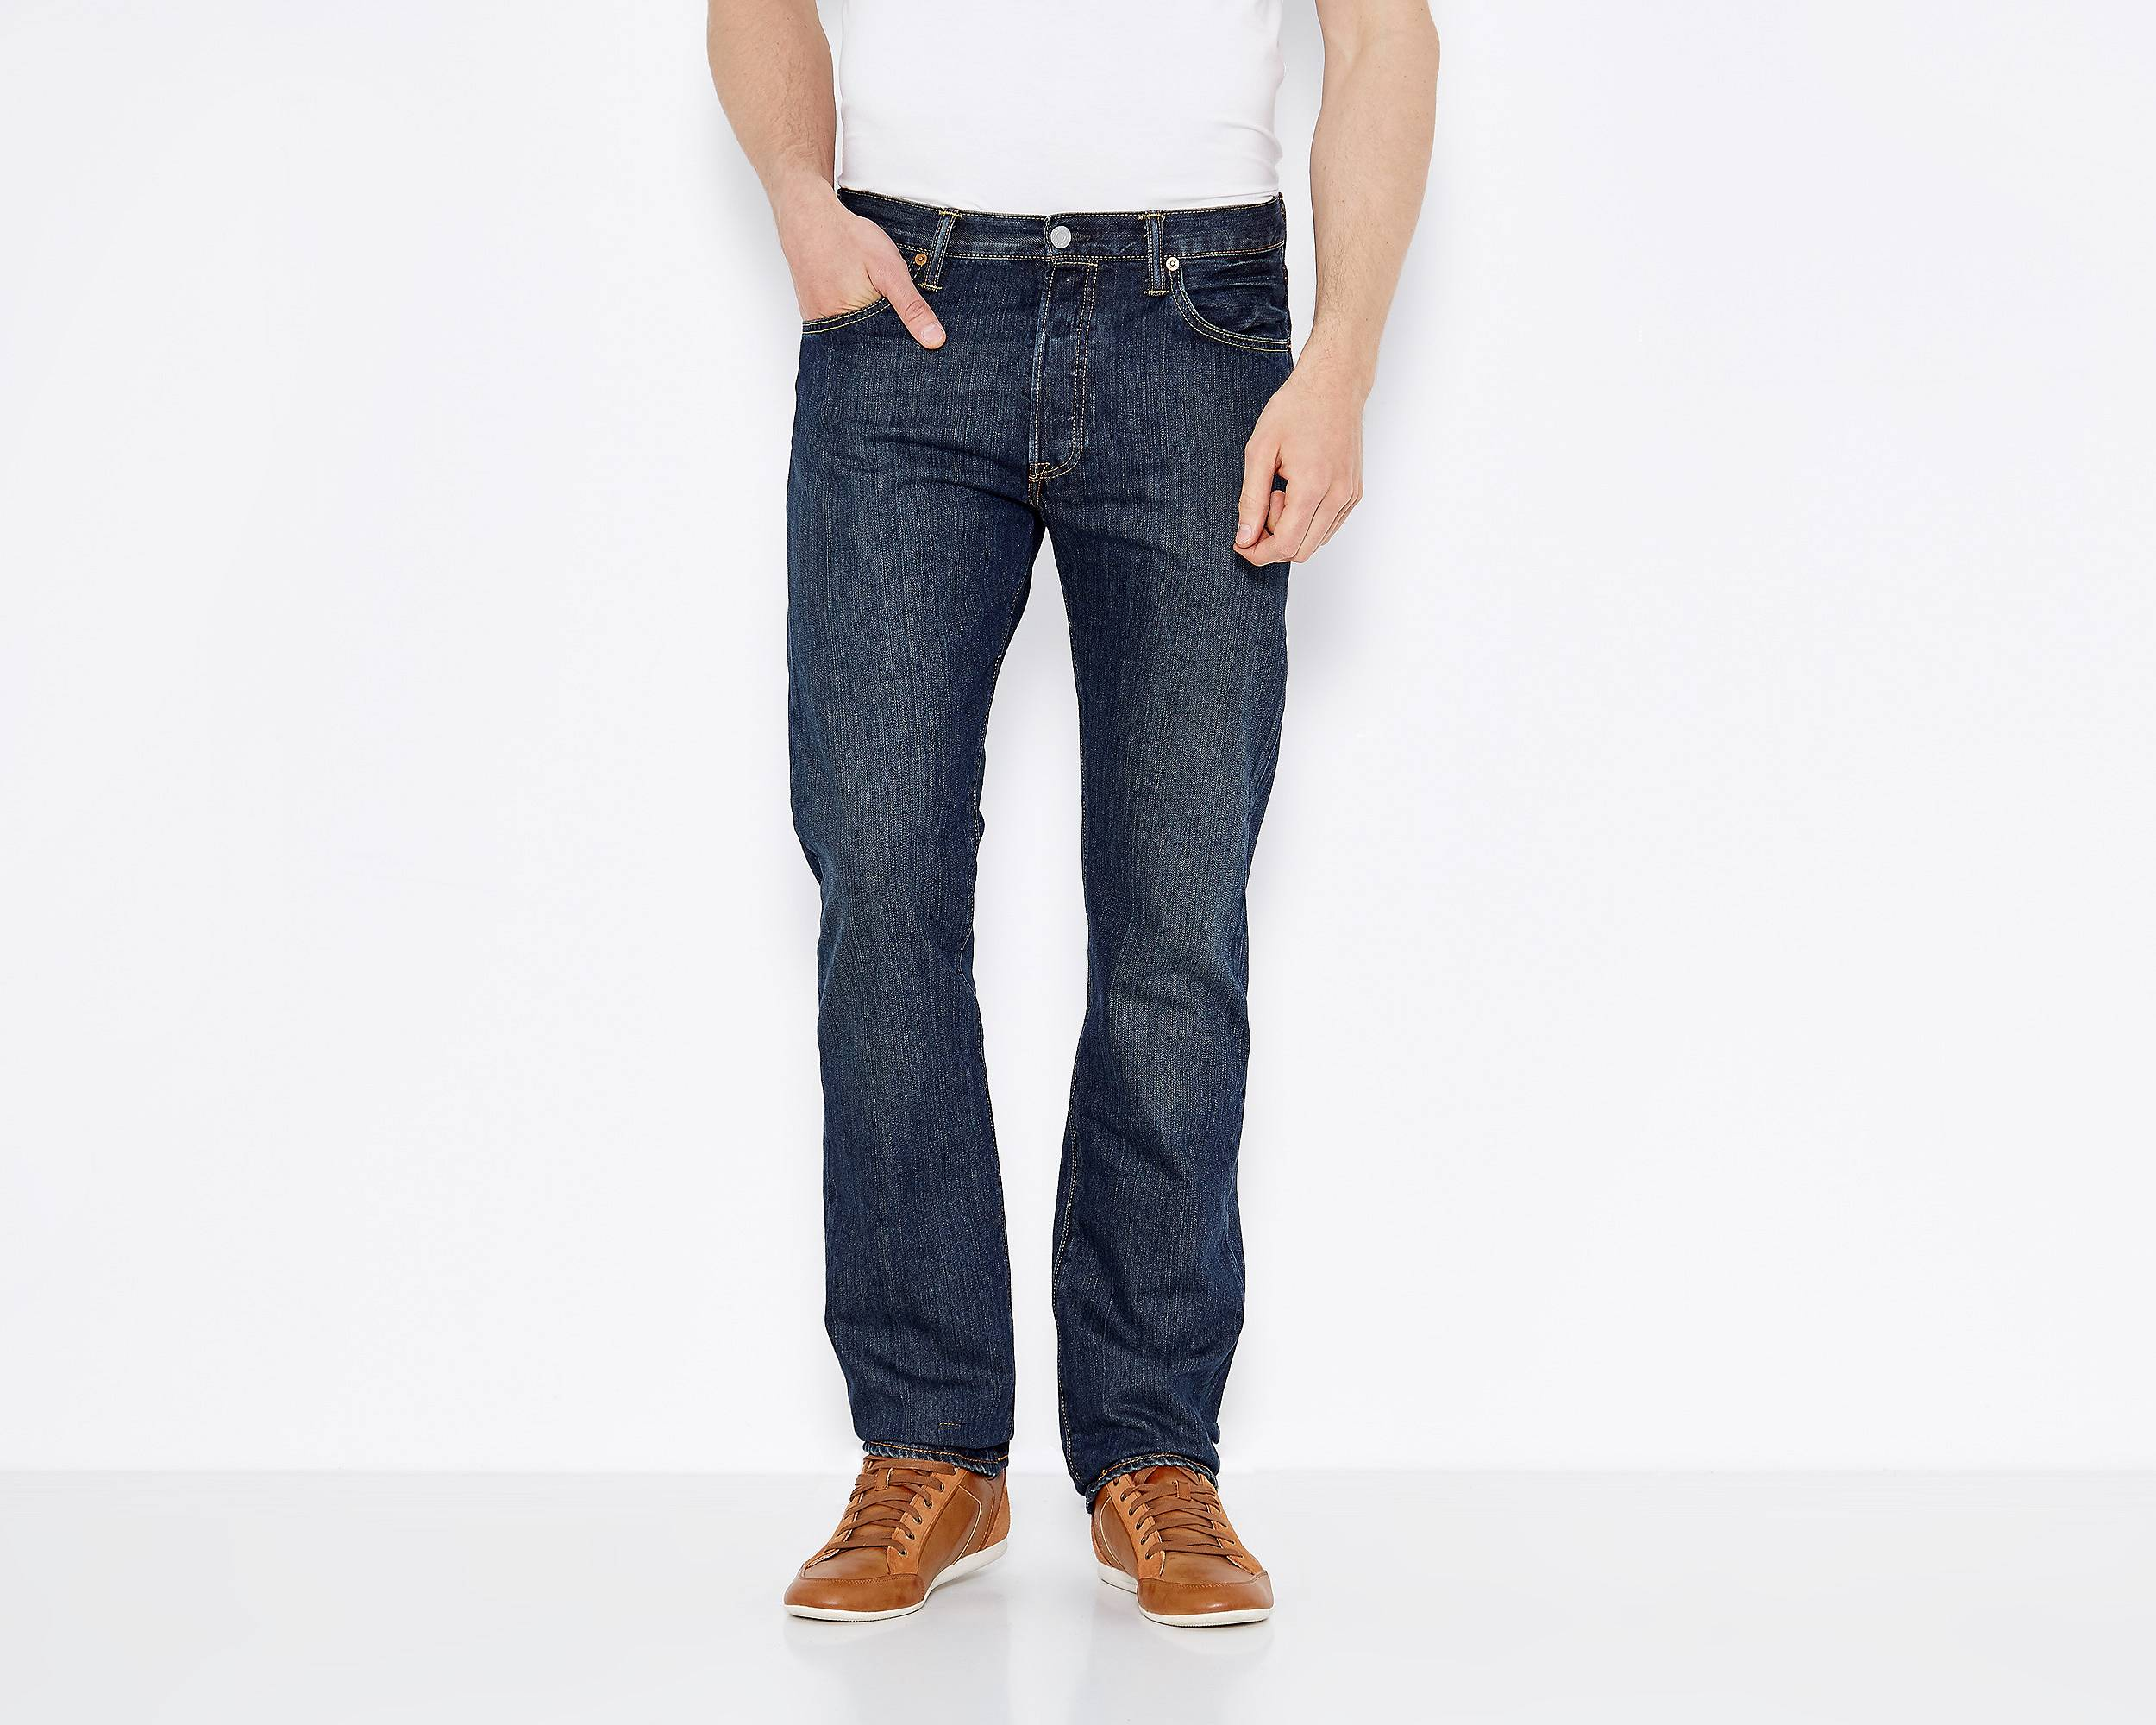 jean-levis-501-original-fit-dark-clean.jpg